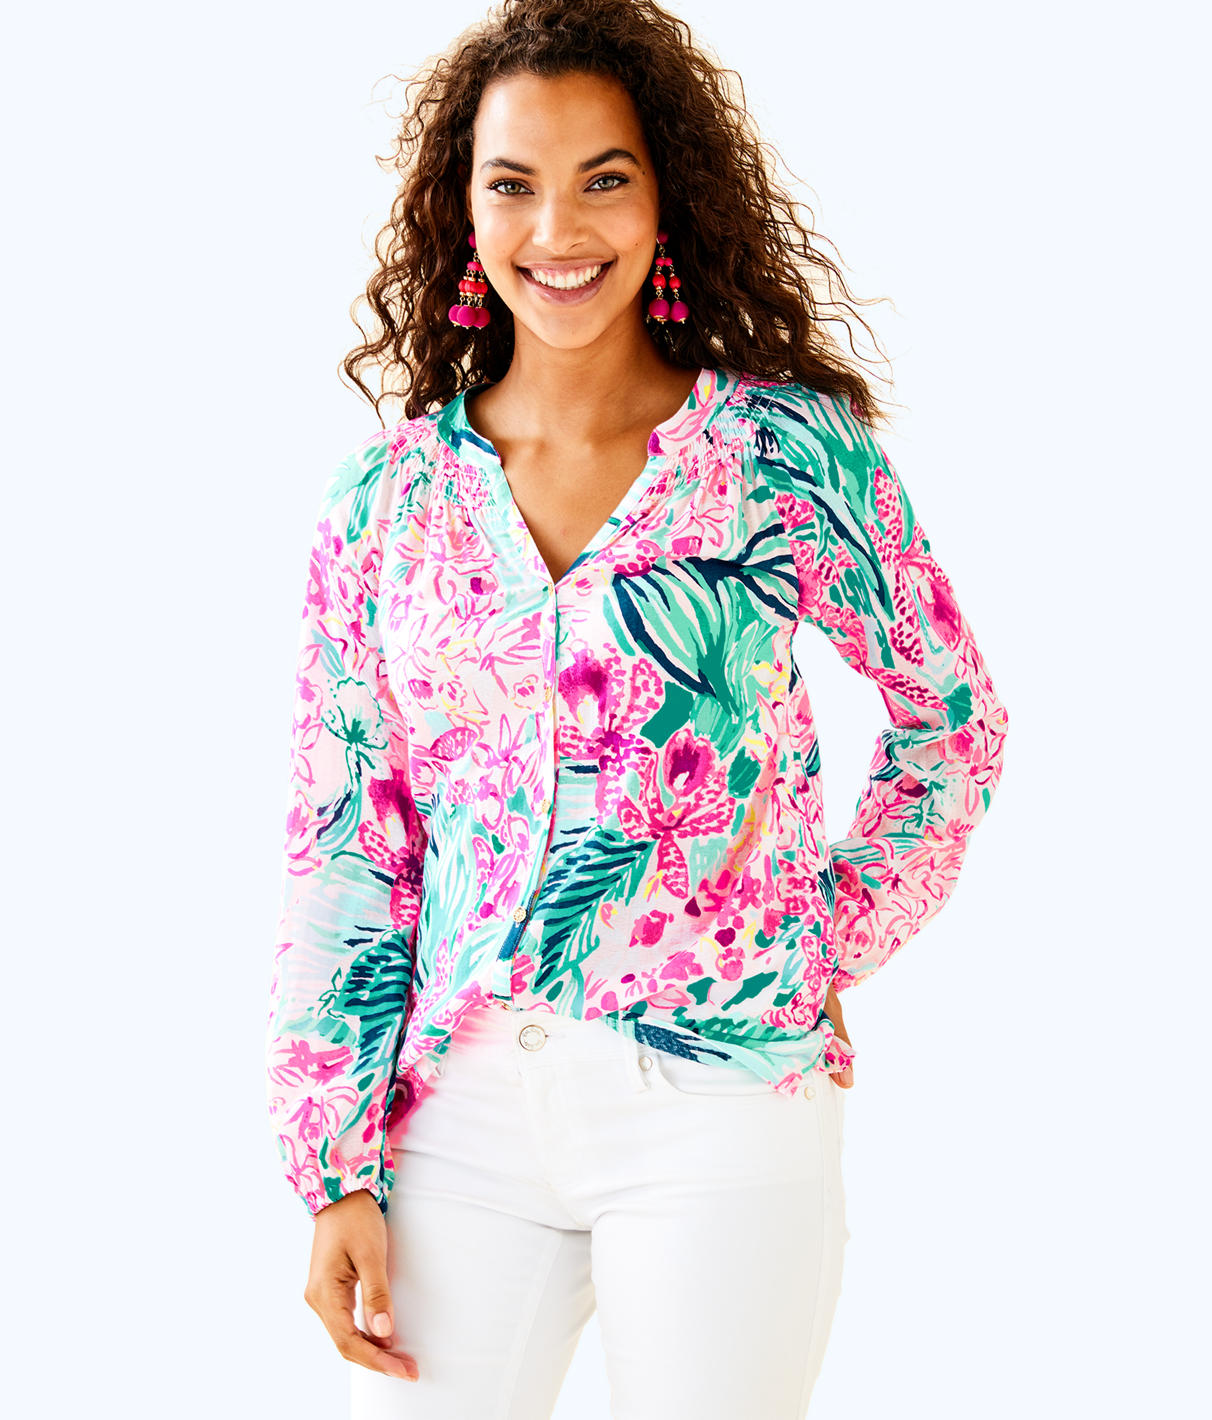 Lilly Pulitzer Lilly Pulitzer Womens Button Front Elsa Top